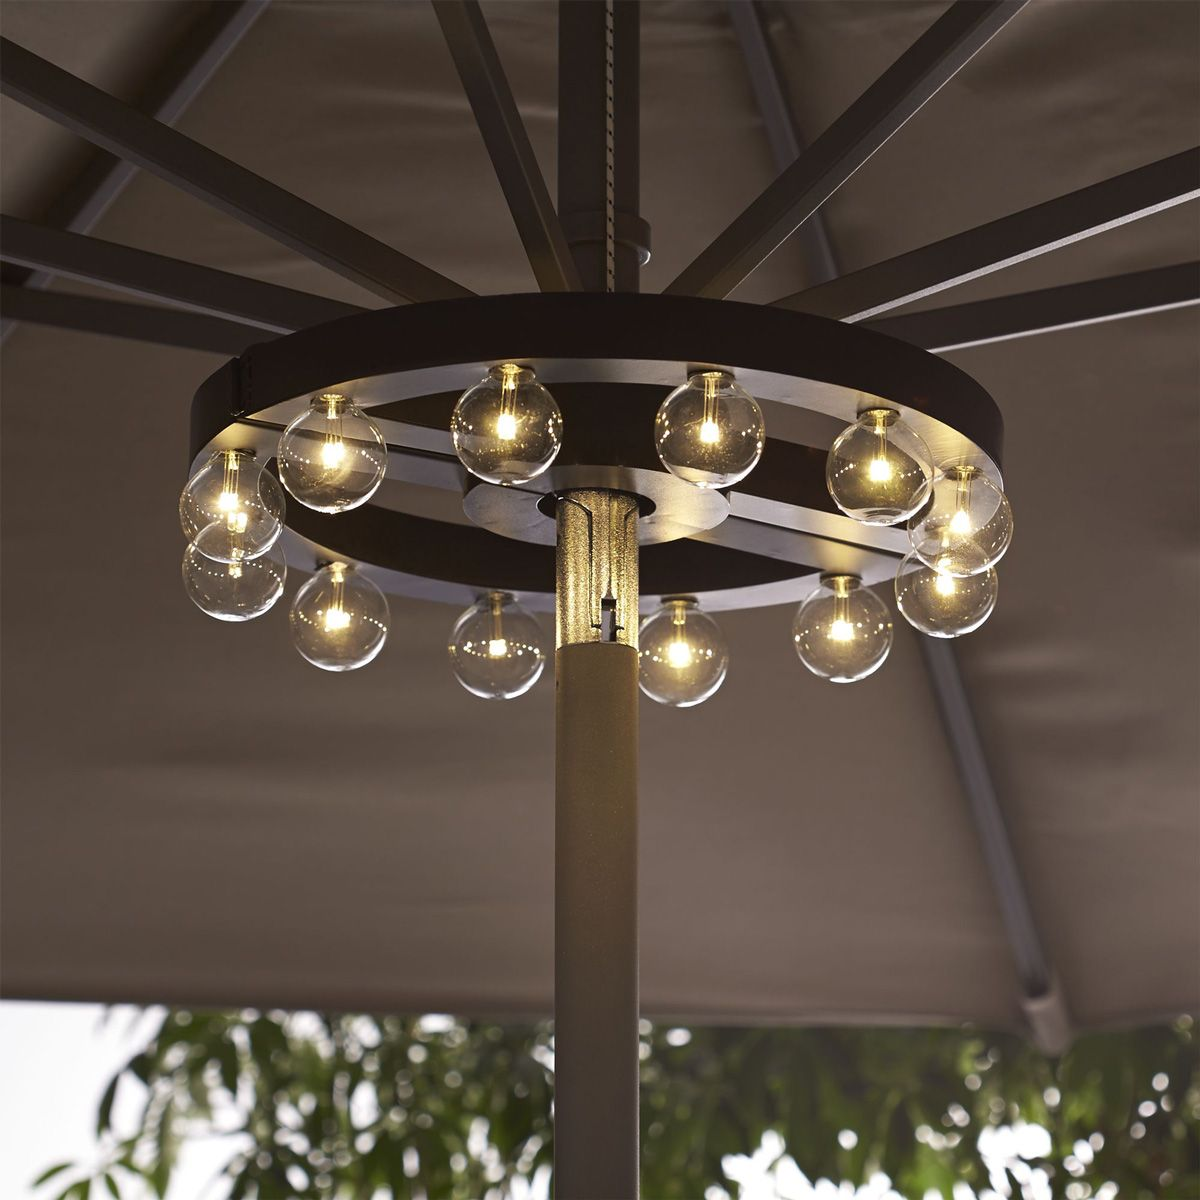 Solar Umbrella Clip Lights Pleasing Patio Umbrella Marquee Lights  Pinterest  Patio Umbrellas Marquee 2018